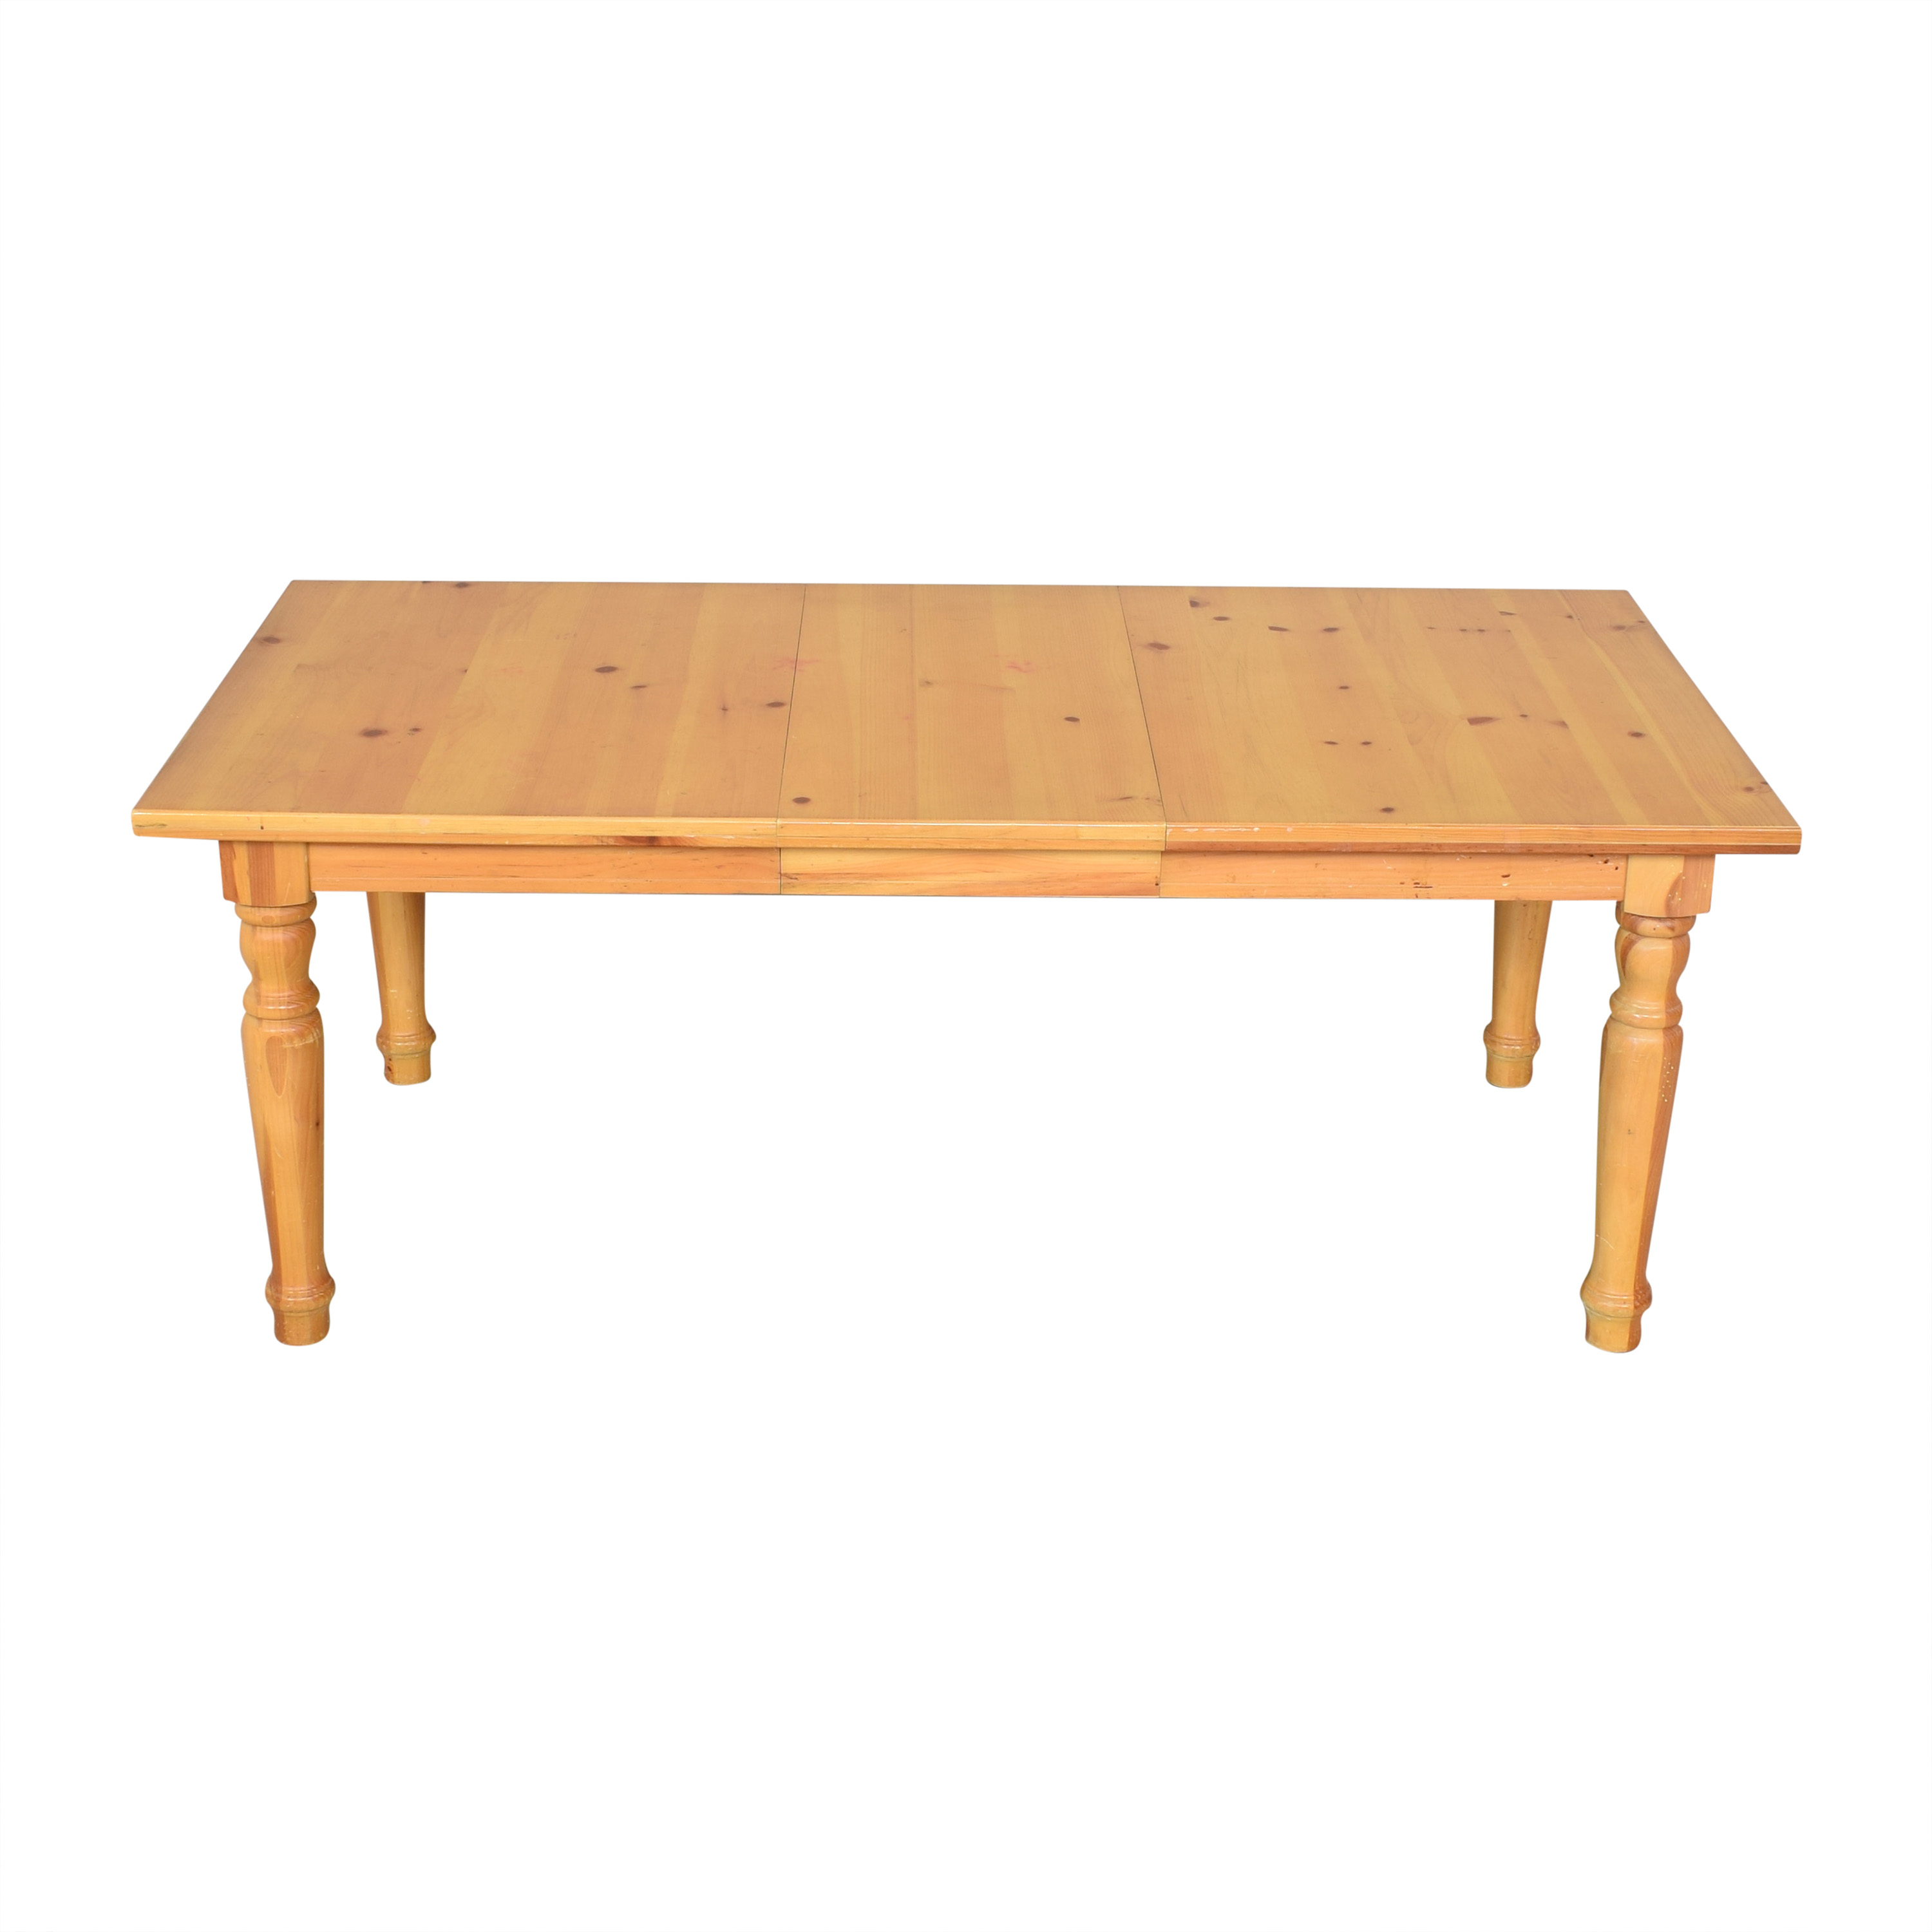 Broyhill Furniture Broyhill Extendable Dining Table on sale